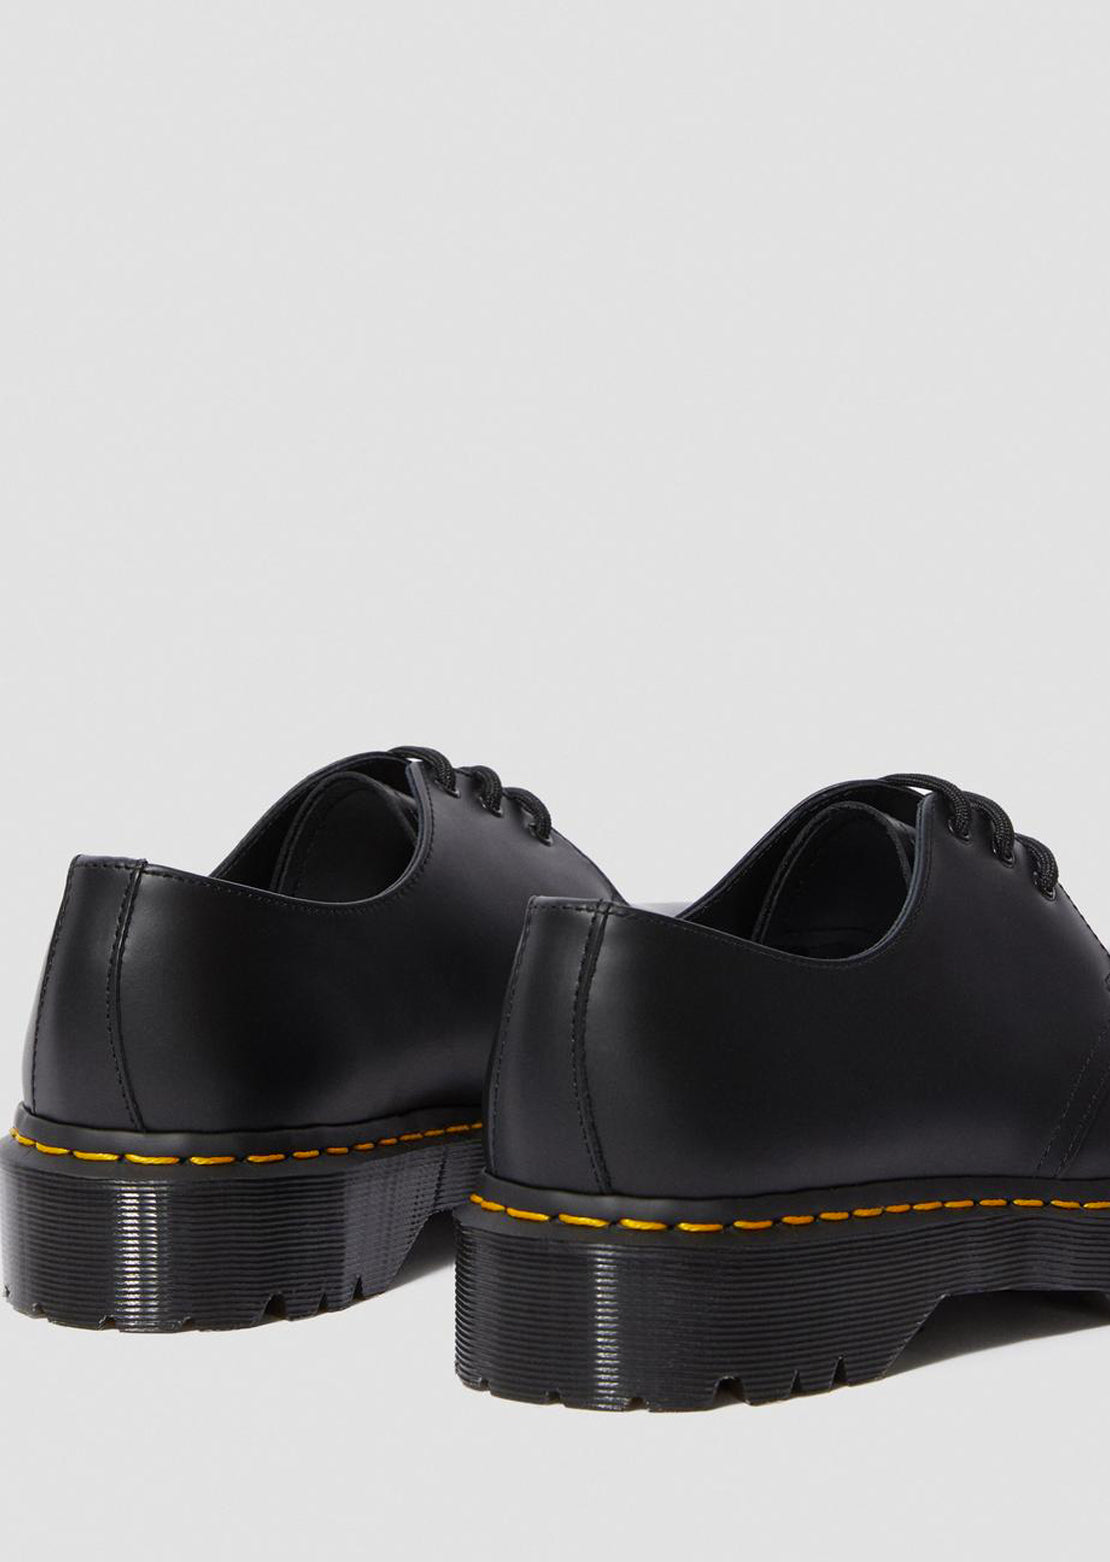 Dr.Martens Women's 1461 Bex Shoes Black Smooth